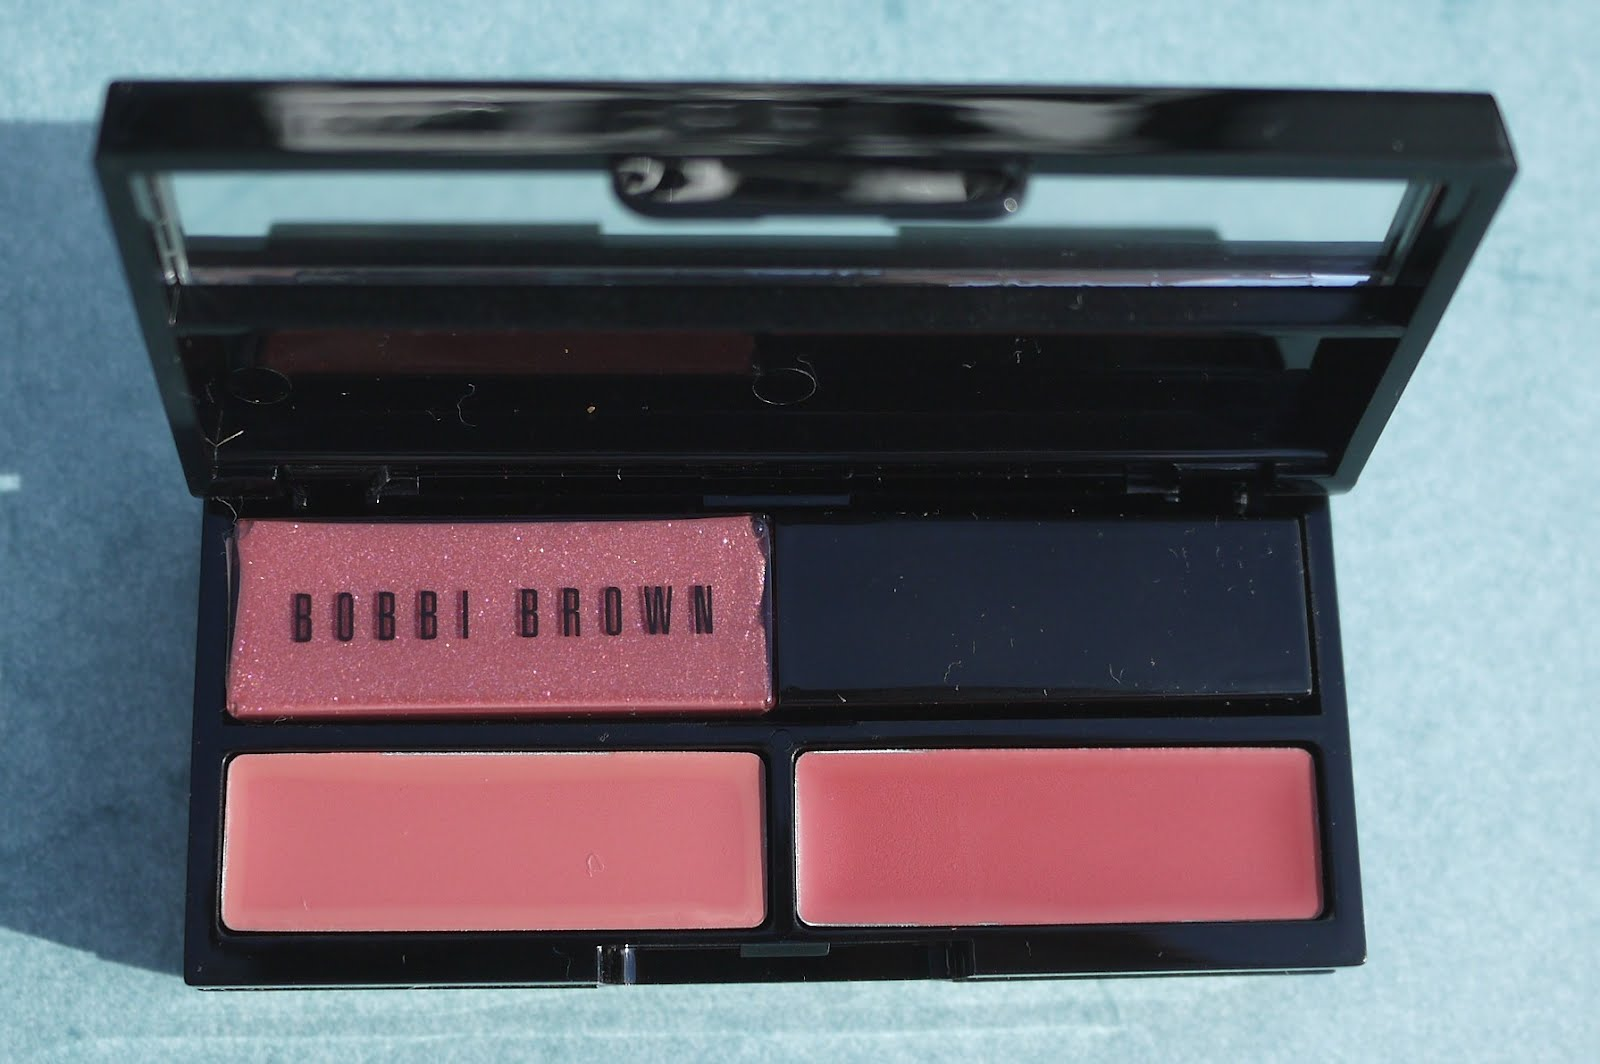 Best Things In Beauty Bobbi Brown Classics To Go Palette For The Illuminating Cheek Limited Edition A Small Quantity Of Sets Was Available At Bobbibrowncom 25 Thats Where I Bought Mine